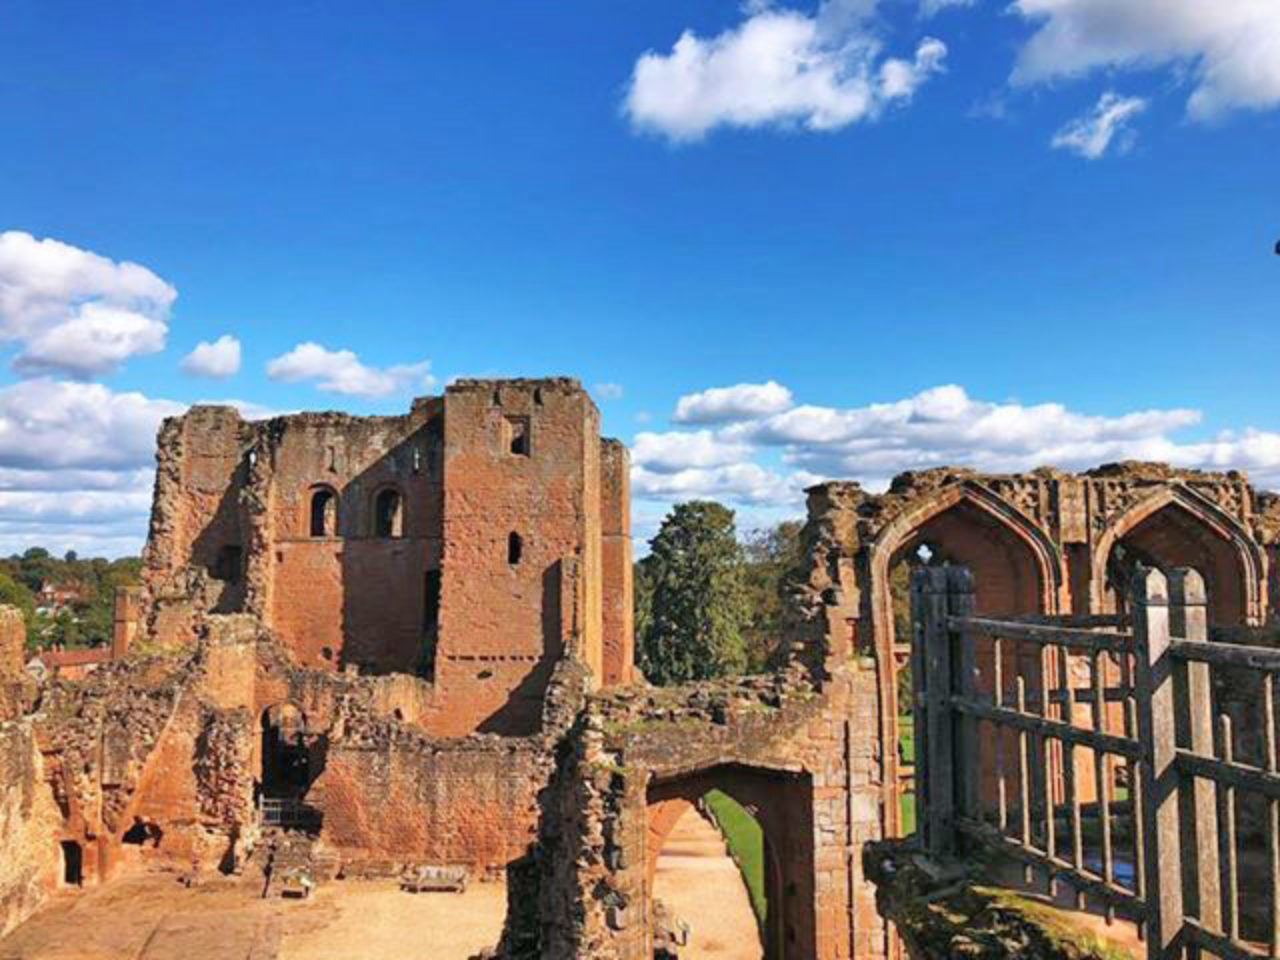 The glorious ruins of Kenilworth Castle.